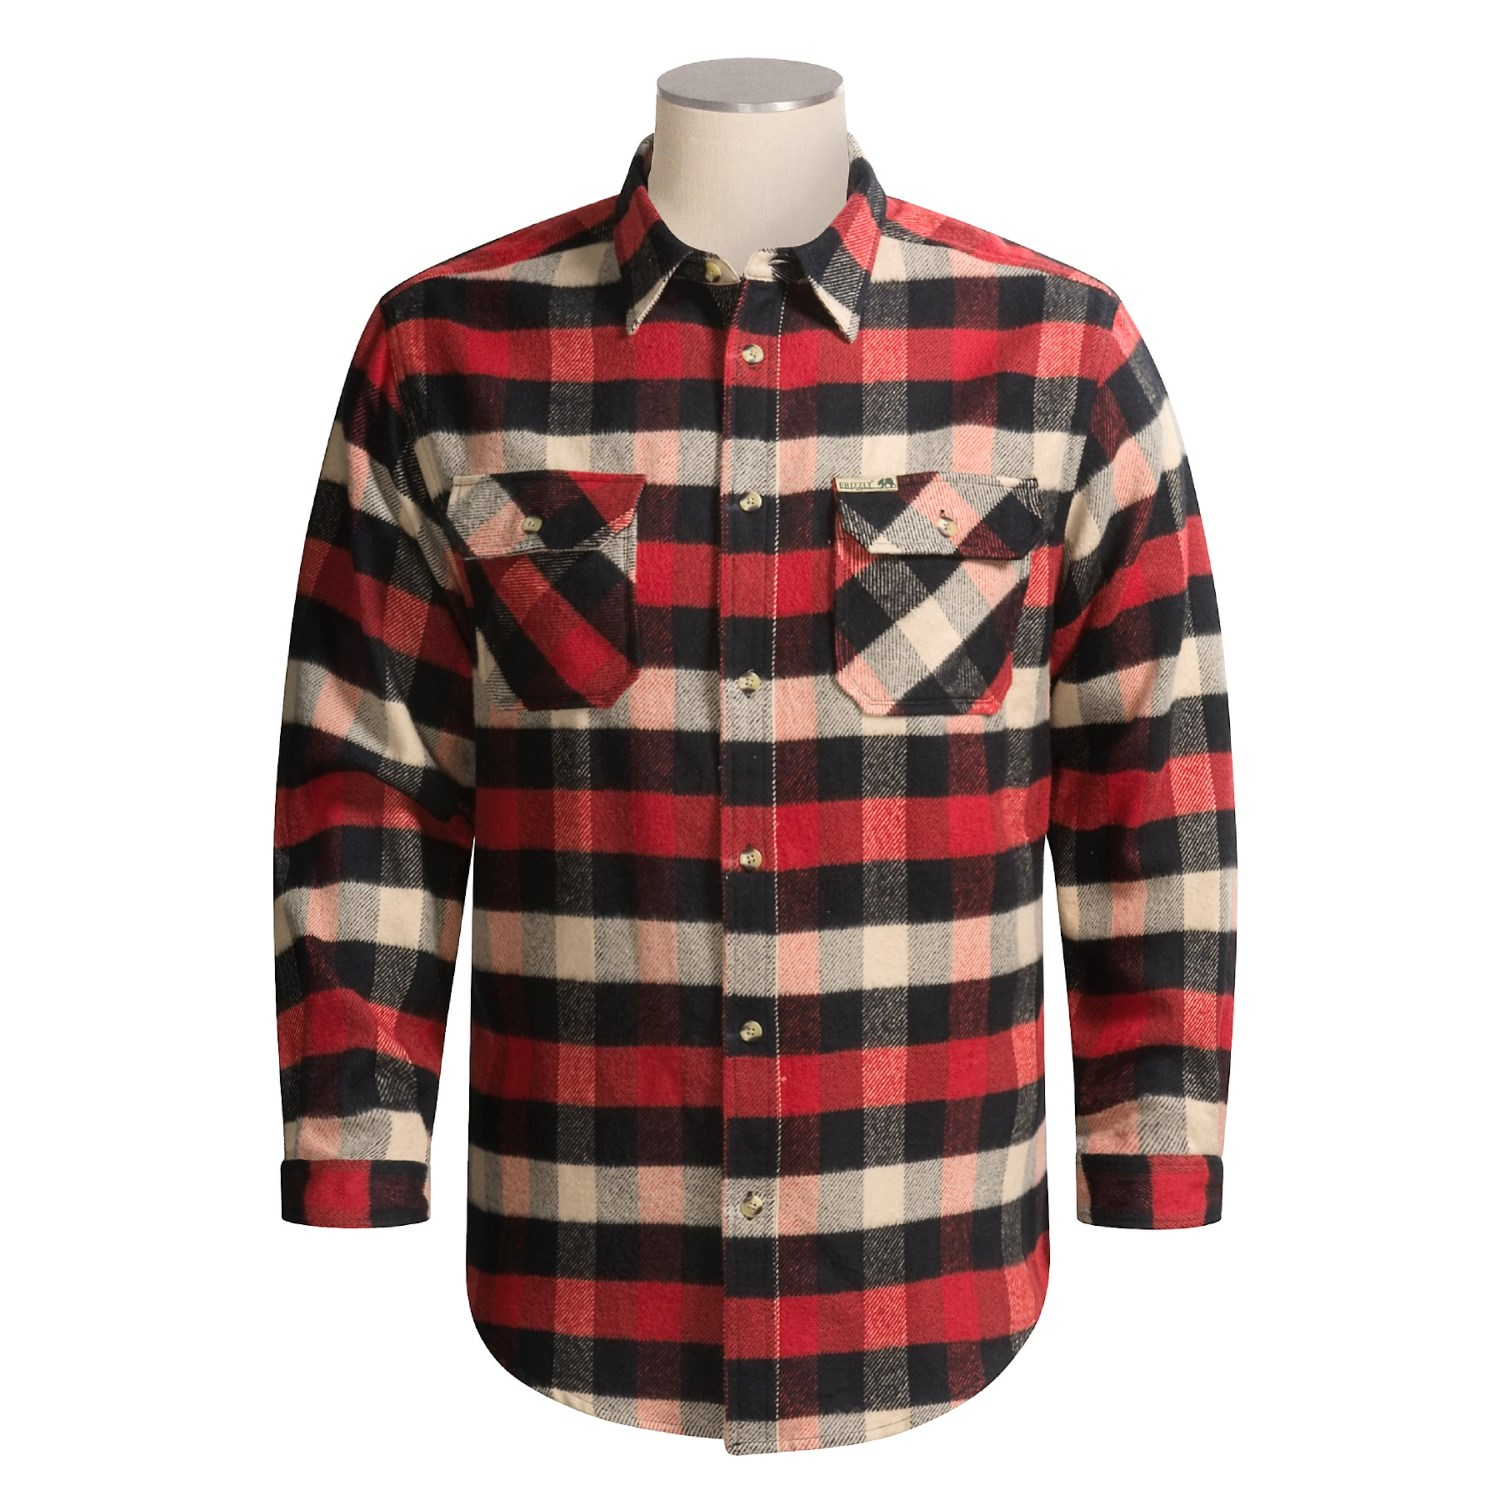 Grizzly Woodsman Buffalo Plaid Shirt For Men 1783a